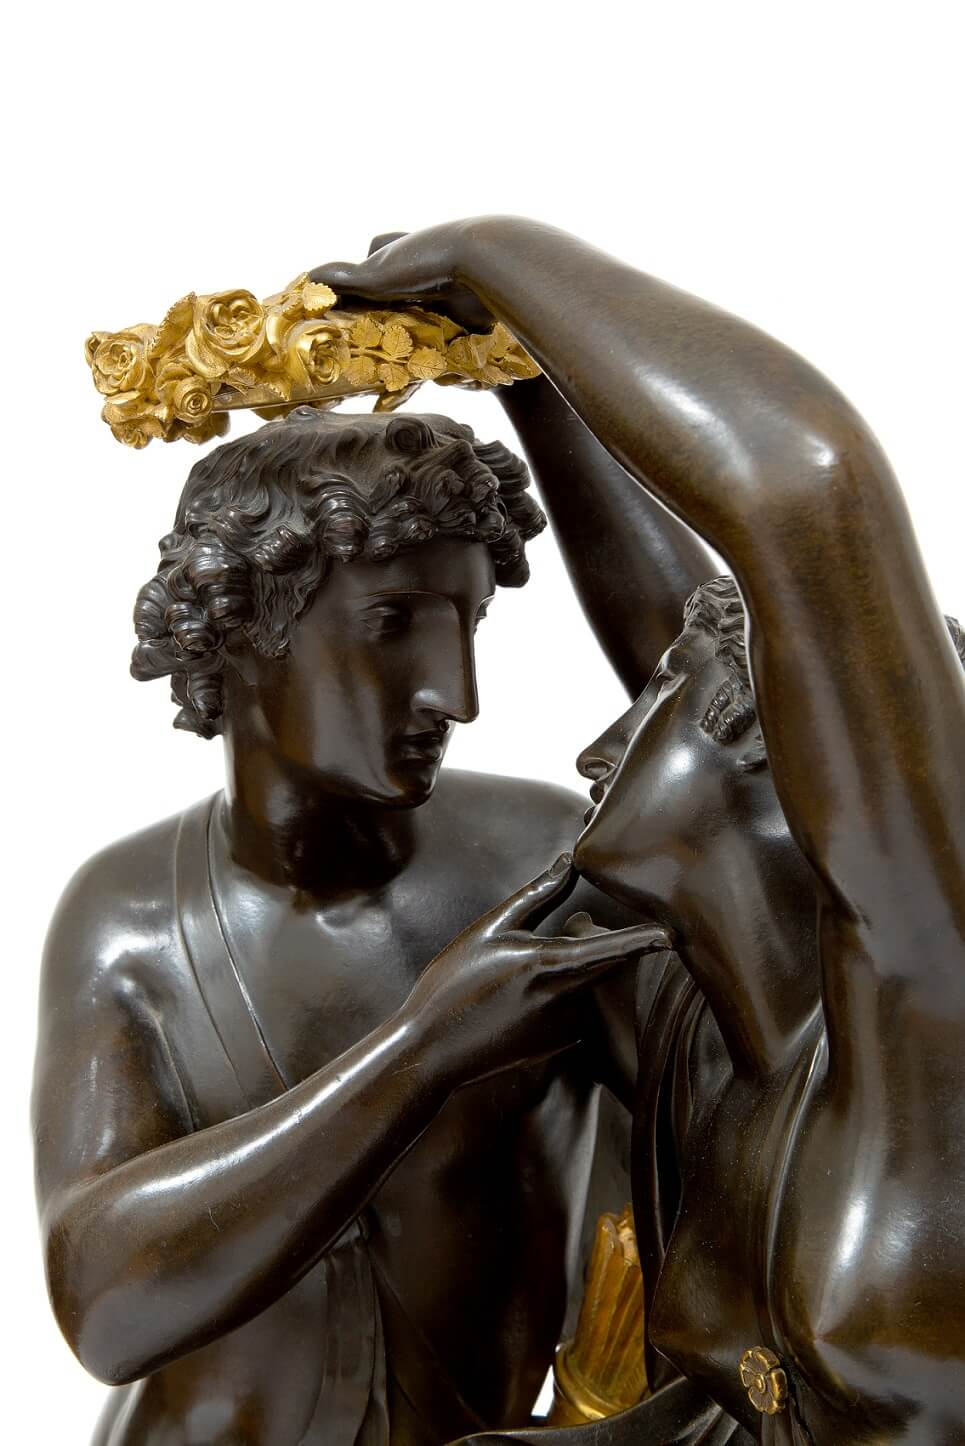 French-Empire-ormolu-gilt-bronze-patinated-sculptural-antique-mantel-clock-michallon-Galle-amor-psyche